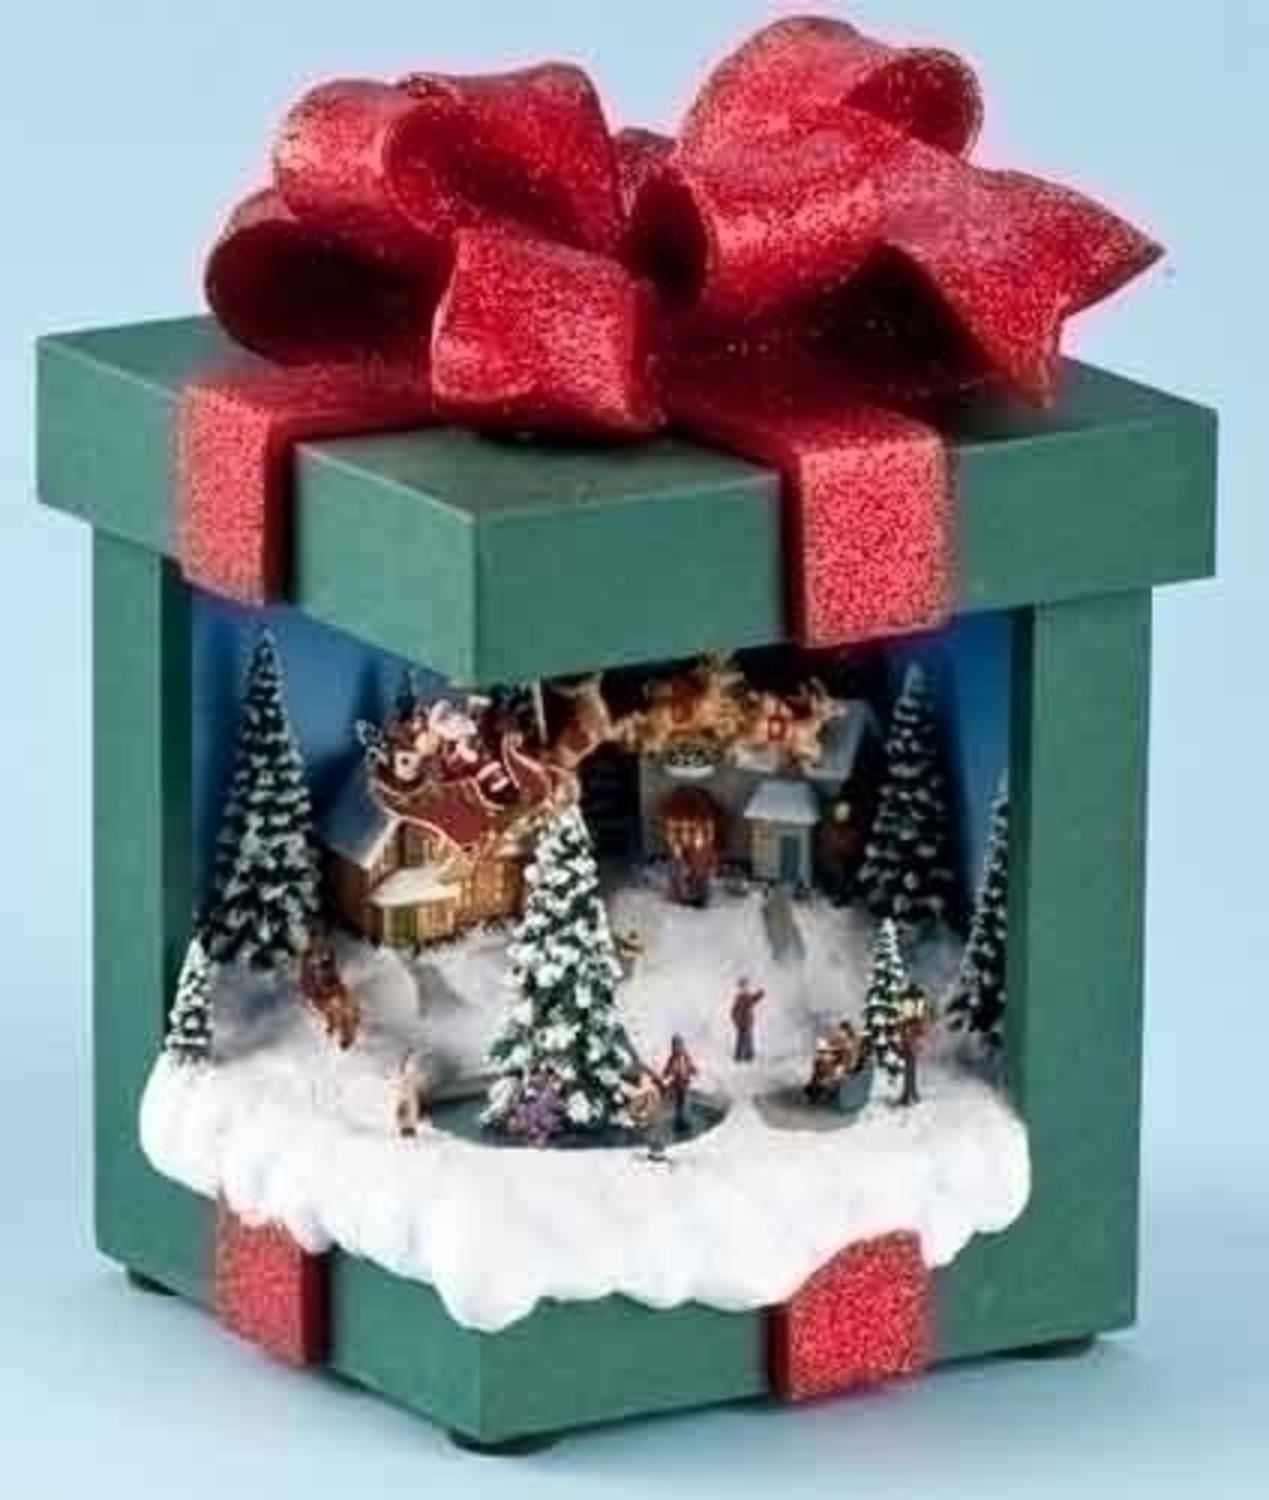 775 Amusements Lighted Animated Christmas Present Music Box With Winter Scene